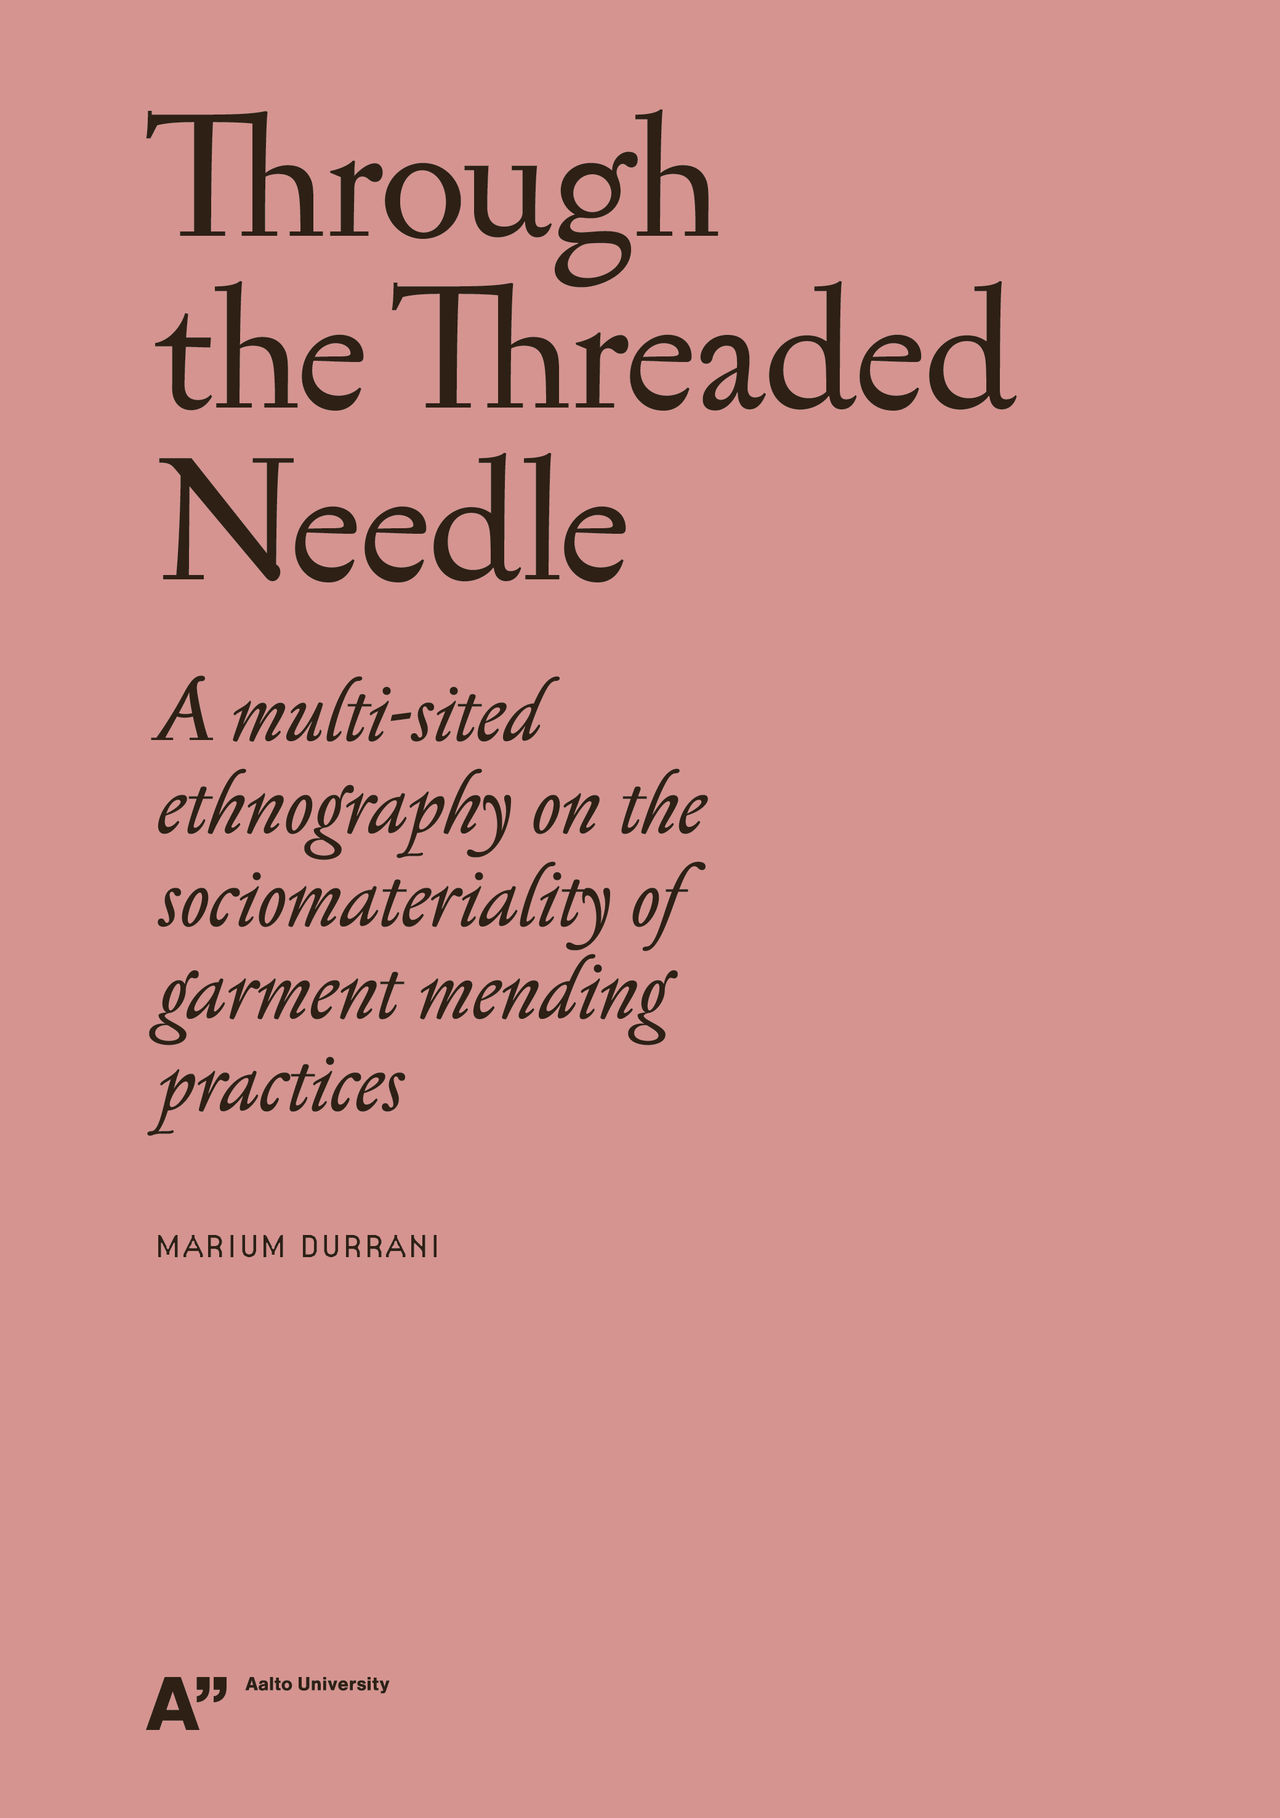 Through the Threaded Needle cover image